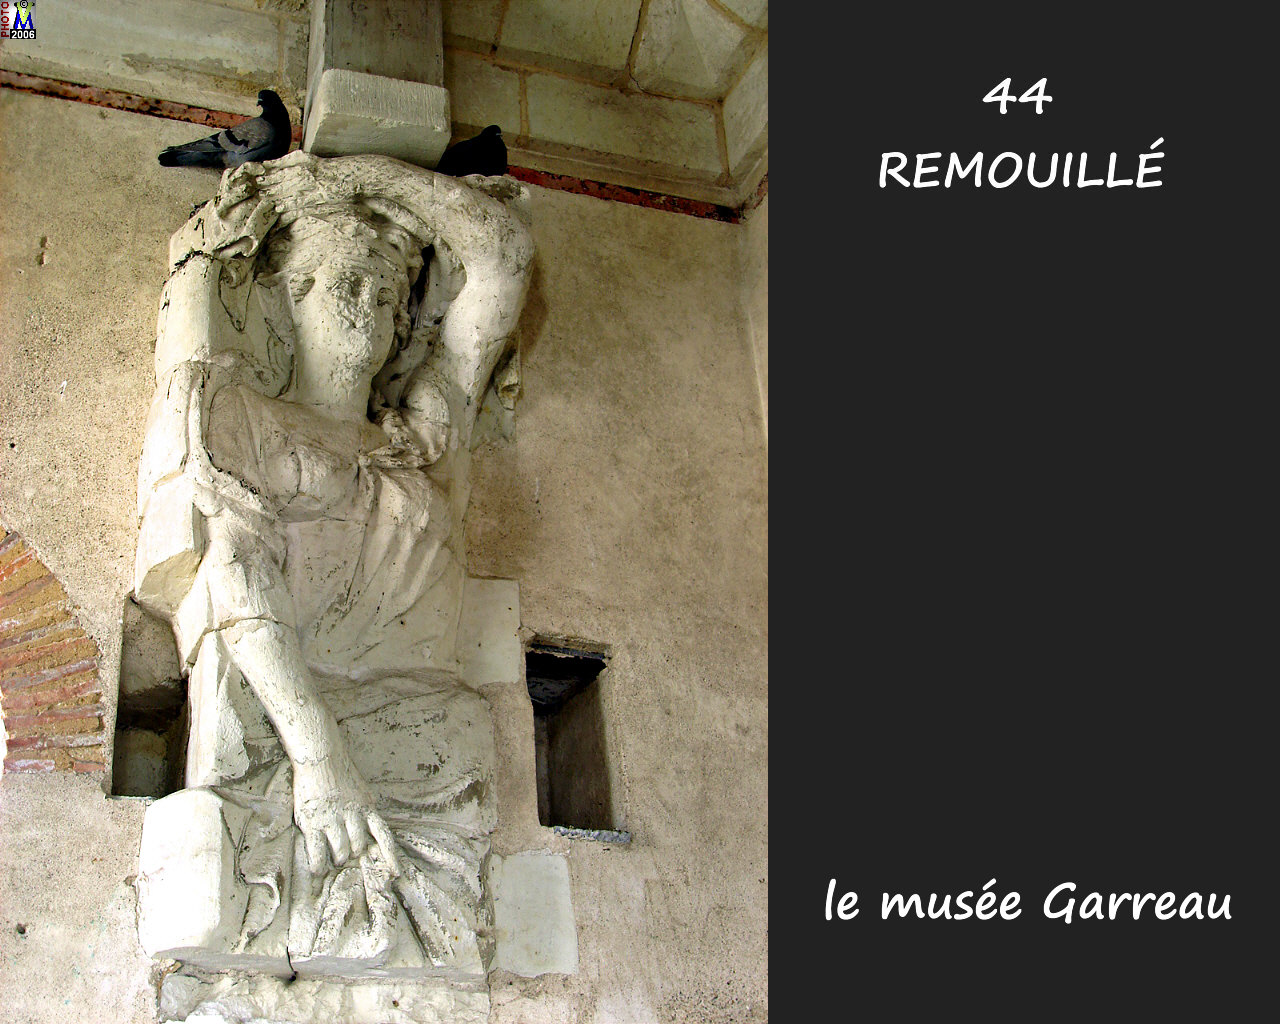 44REMOUILLE_musee_104.jpg